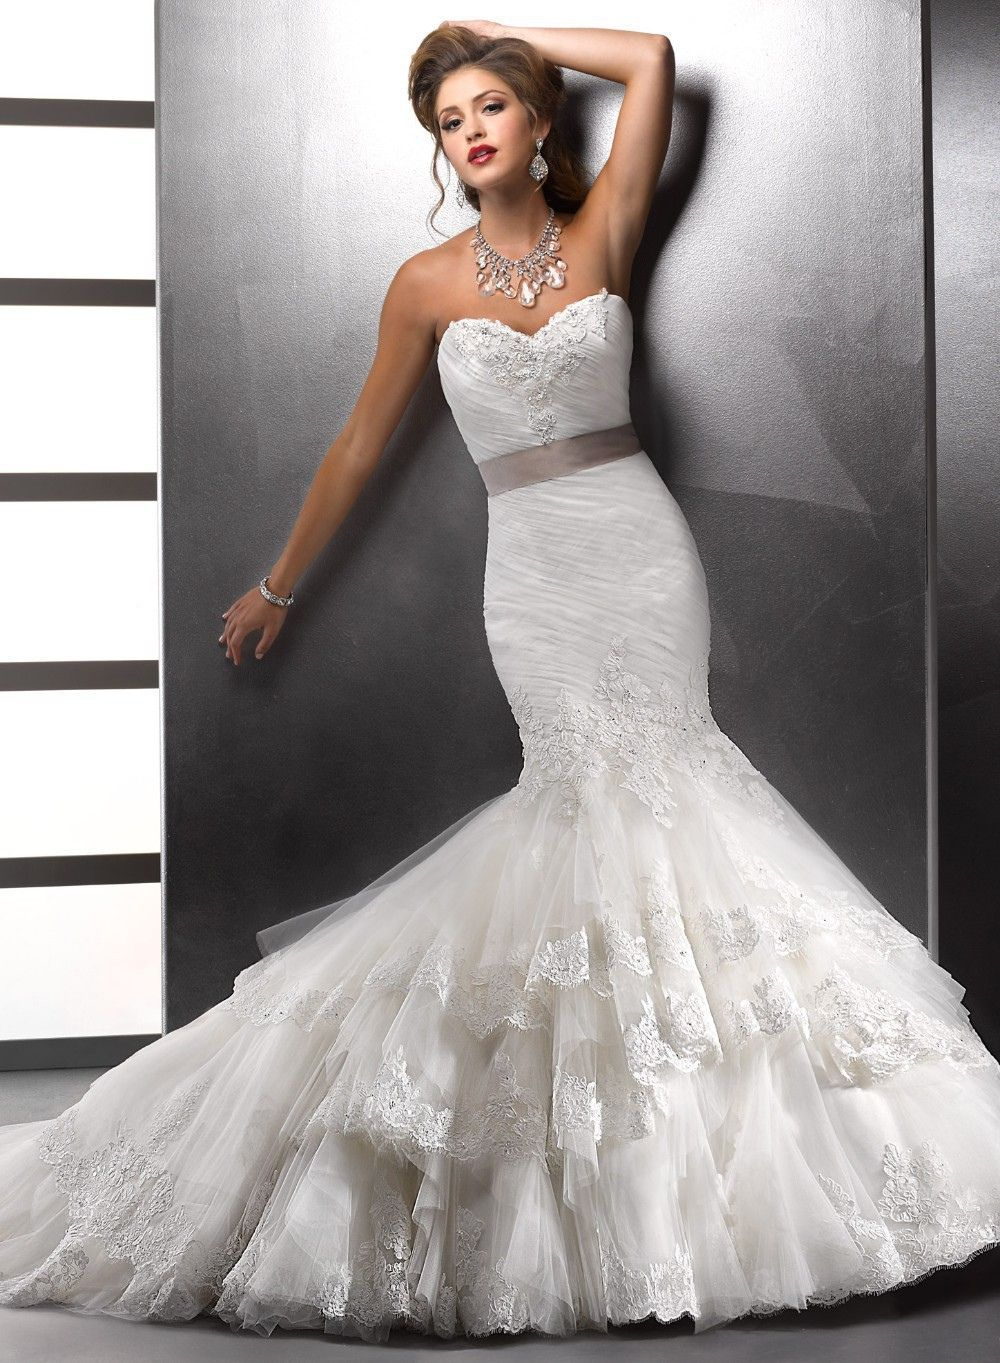 99 Nina Pina Wedding Dresses For Plus Size Check More At Http